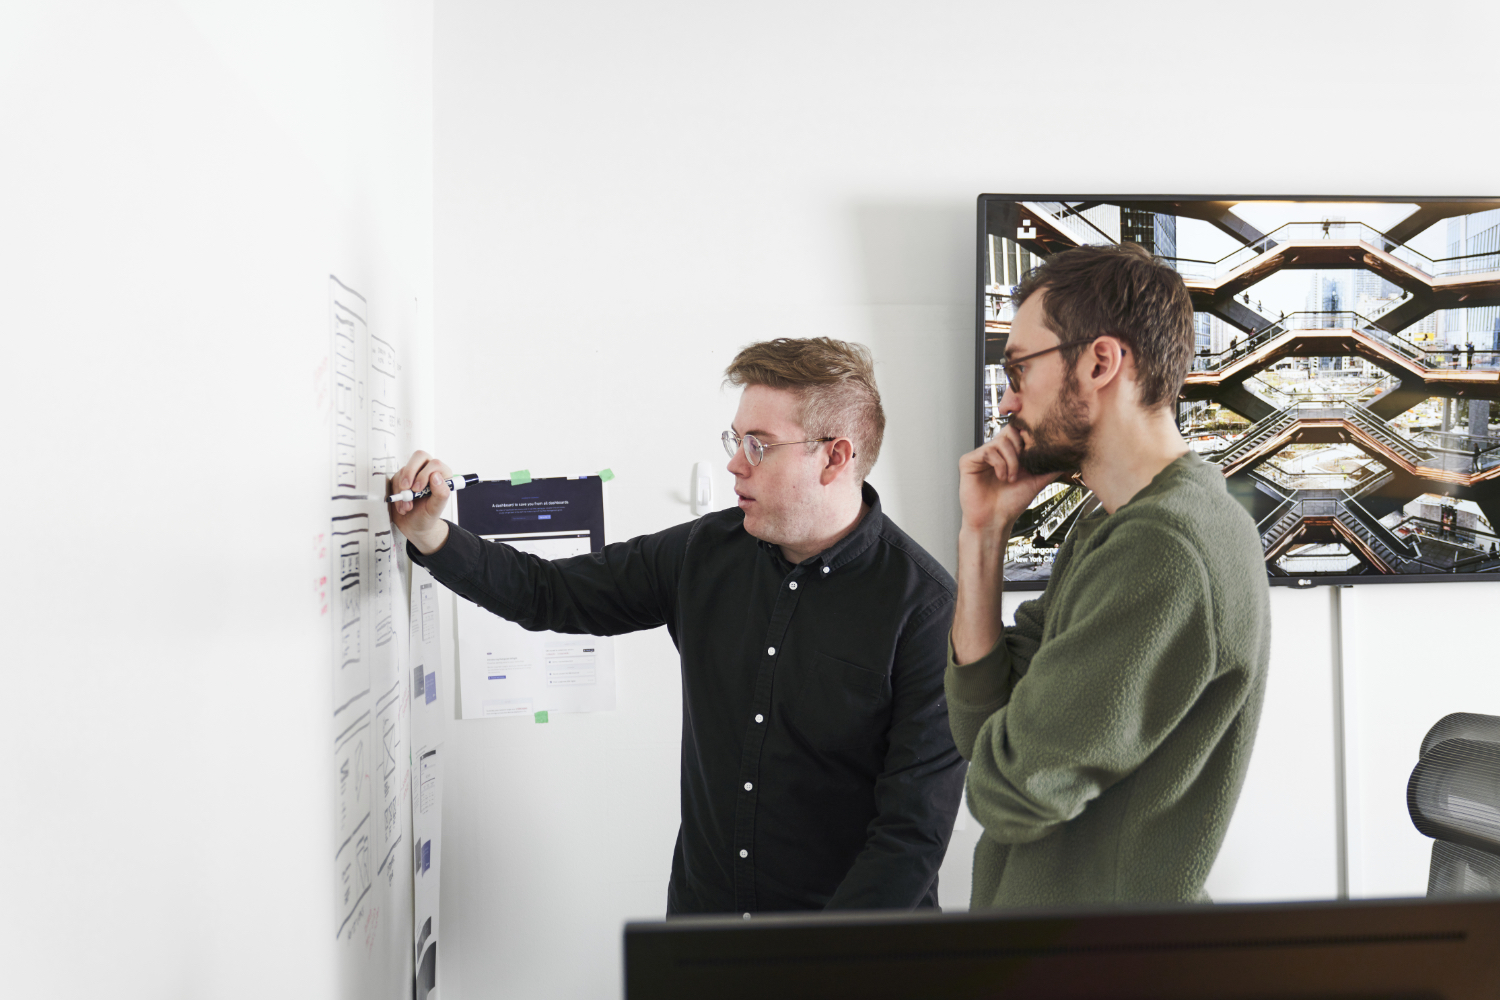 Hologram designers sketching wireframes on a whiteboard